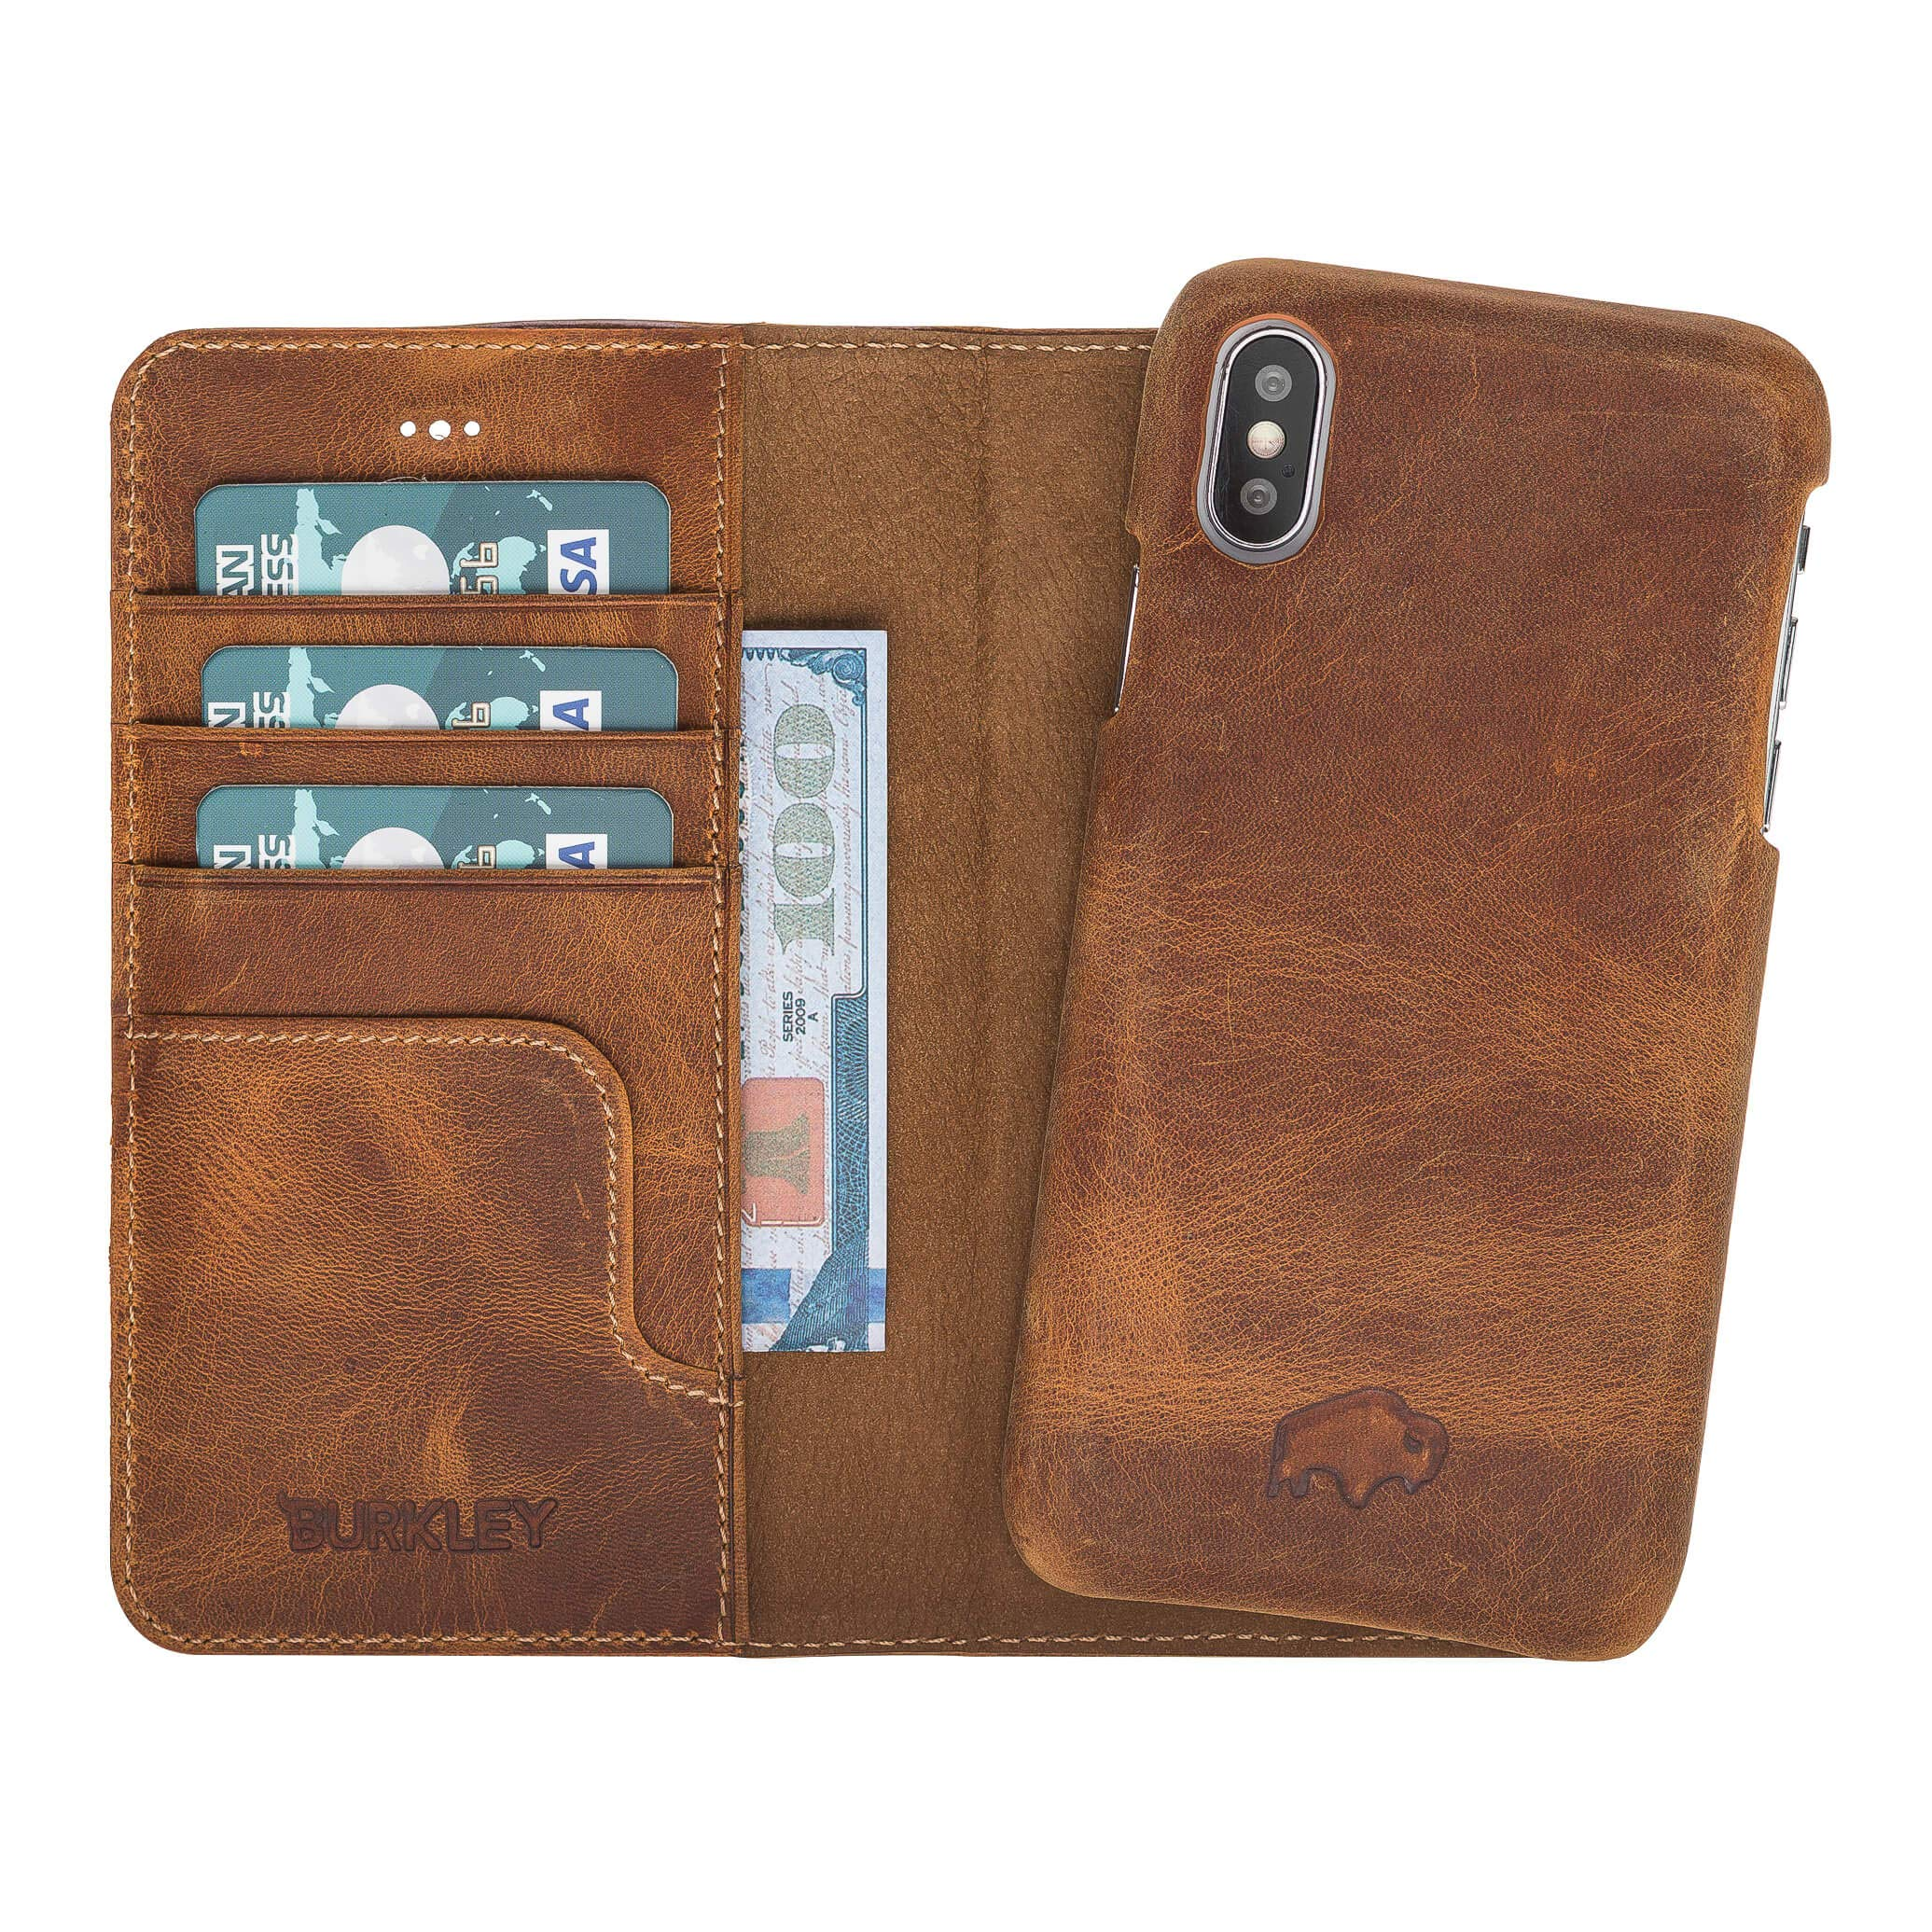 Pieno Full Leather Covered 2 in 1 Detachable Leather Wallet Case with Flap Closure & Premium Snap-on Case, Book Style Cover Compatible Apple iPhone X/XS (Antique Golden Brown) by Burkley Case